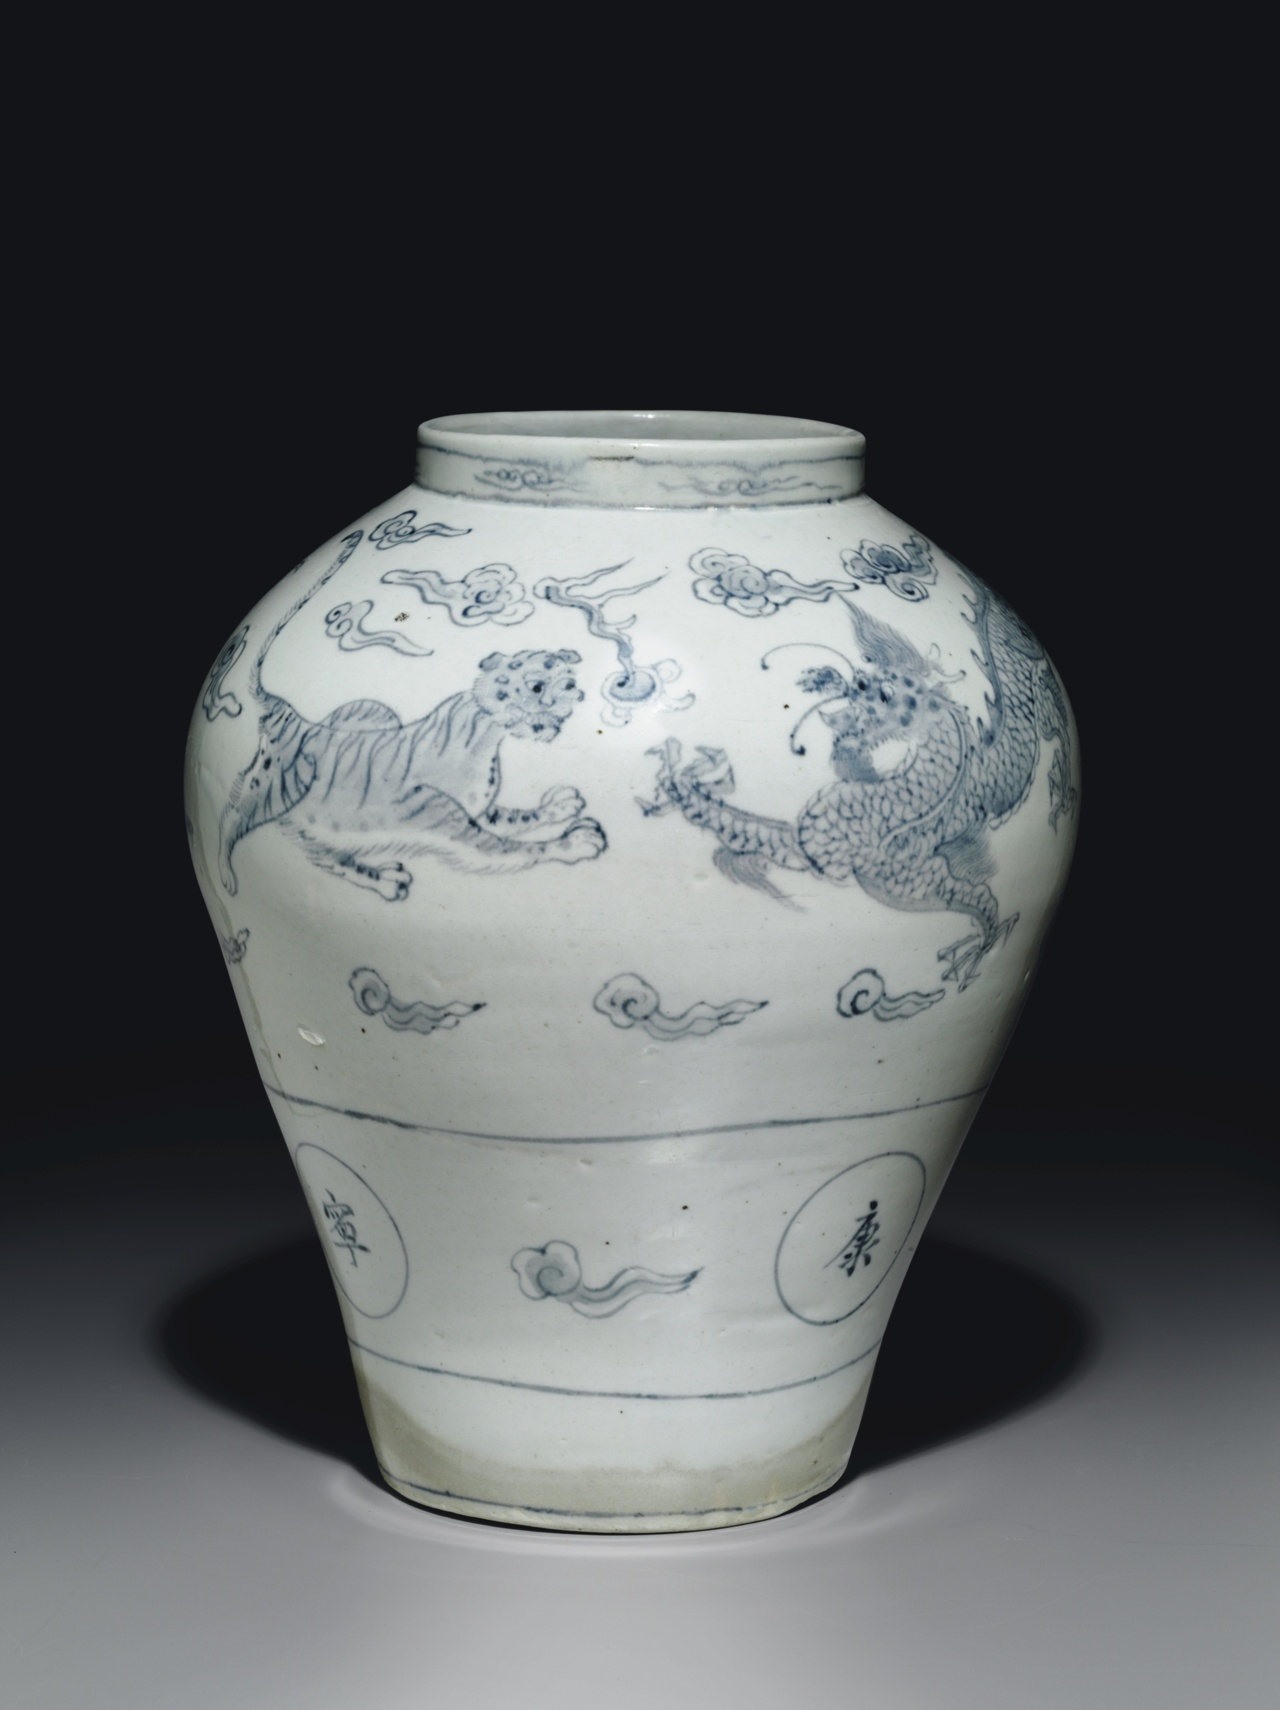 christiesauctions-An-Important-Blue-and-White-Porcelain-Jar-with-Dragons-and-Tigers-wallpaper-wp5603867